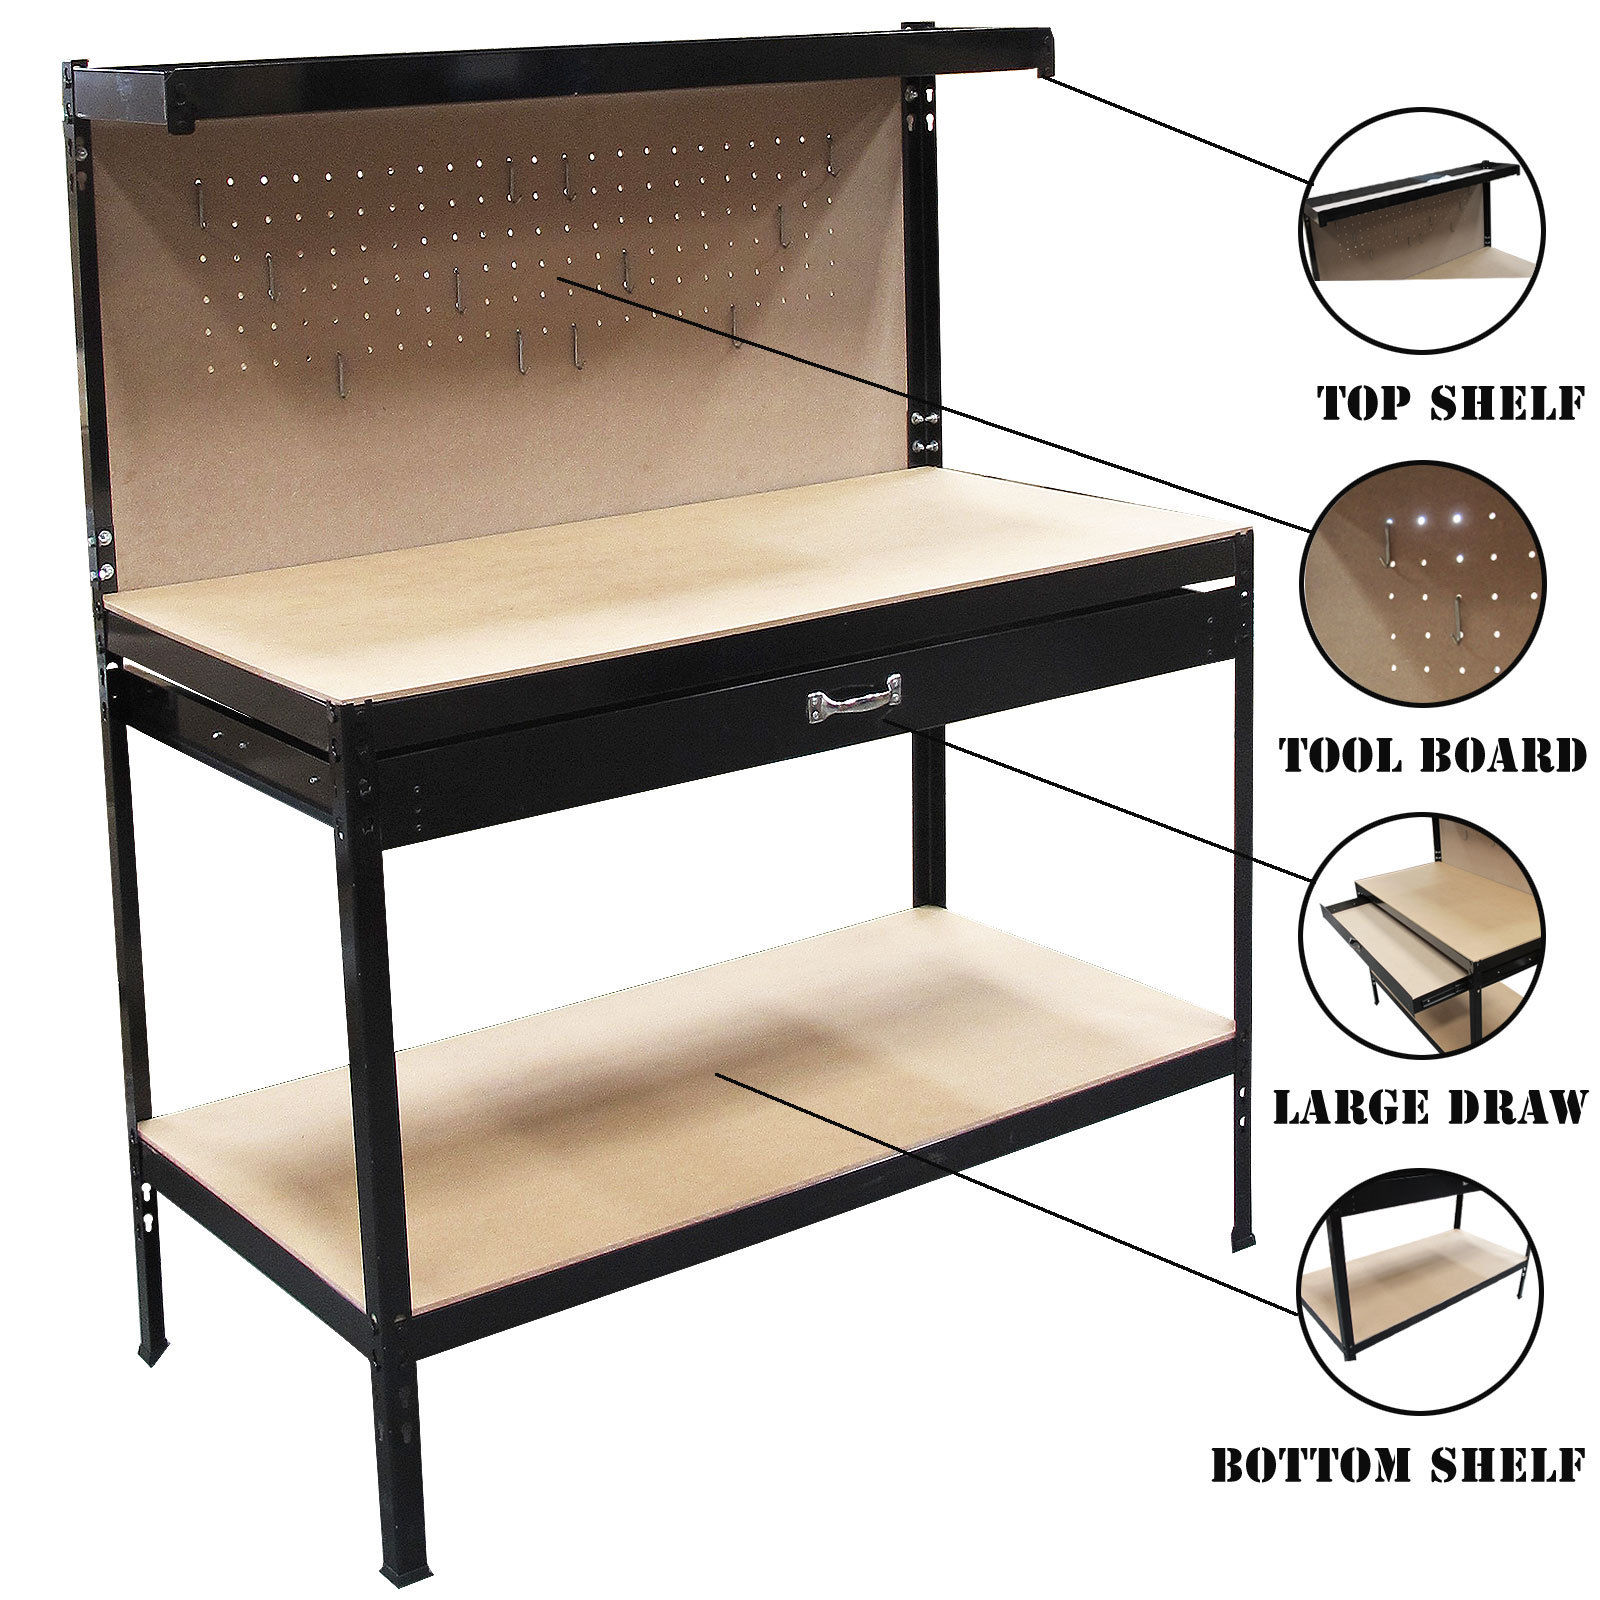 Garage Workbench And Storage Steel Garage Tool Box Work Bench Storage Pegboard Shelf